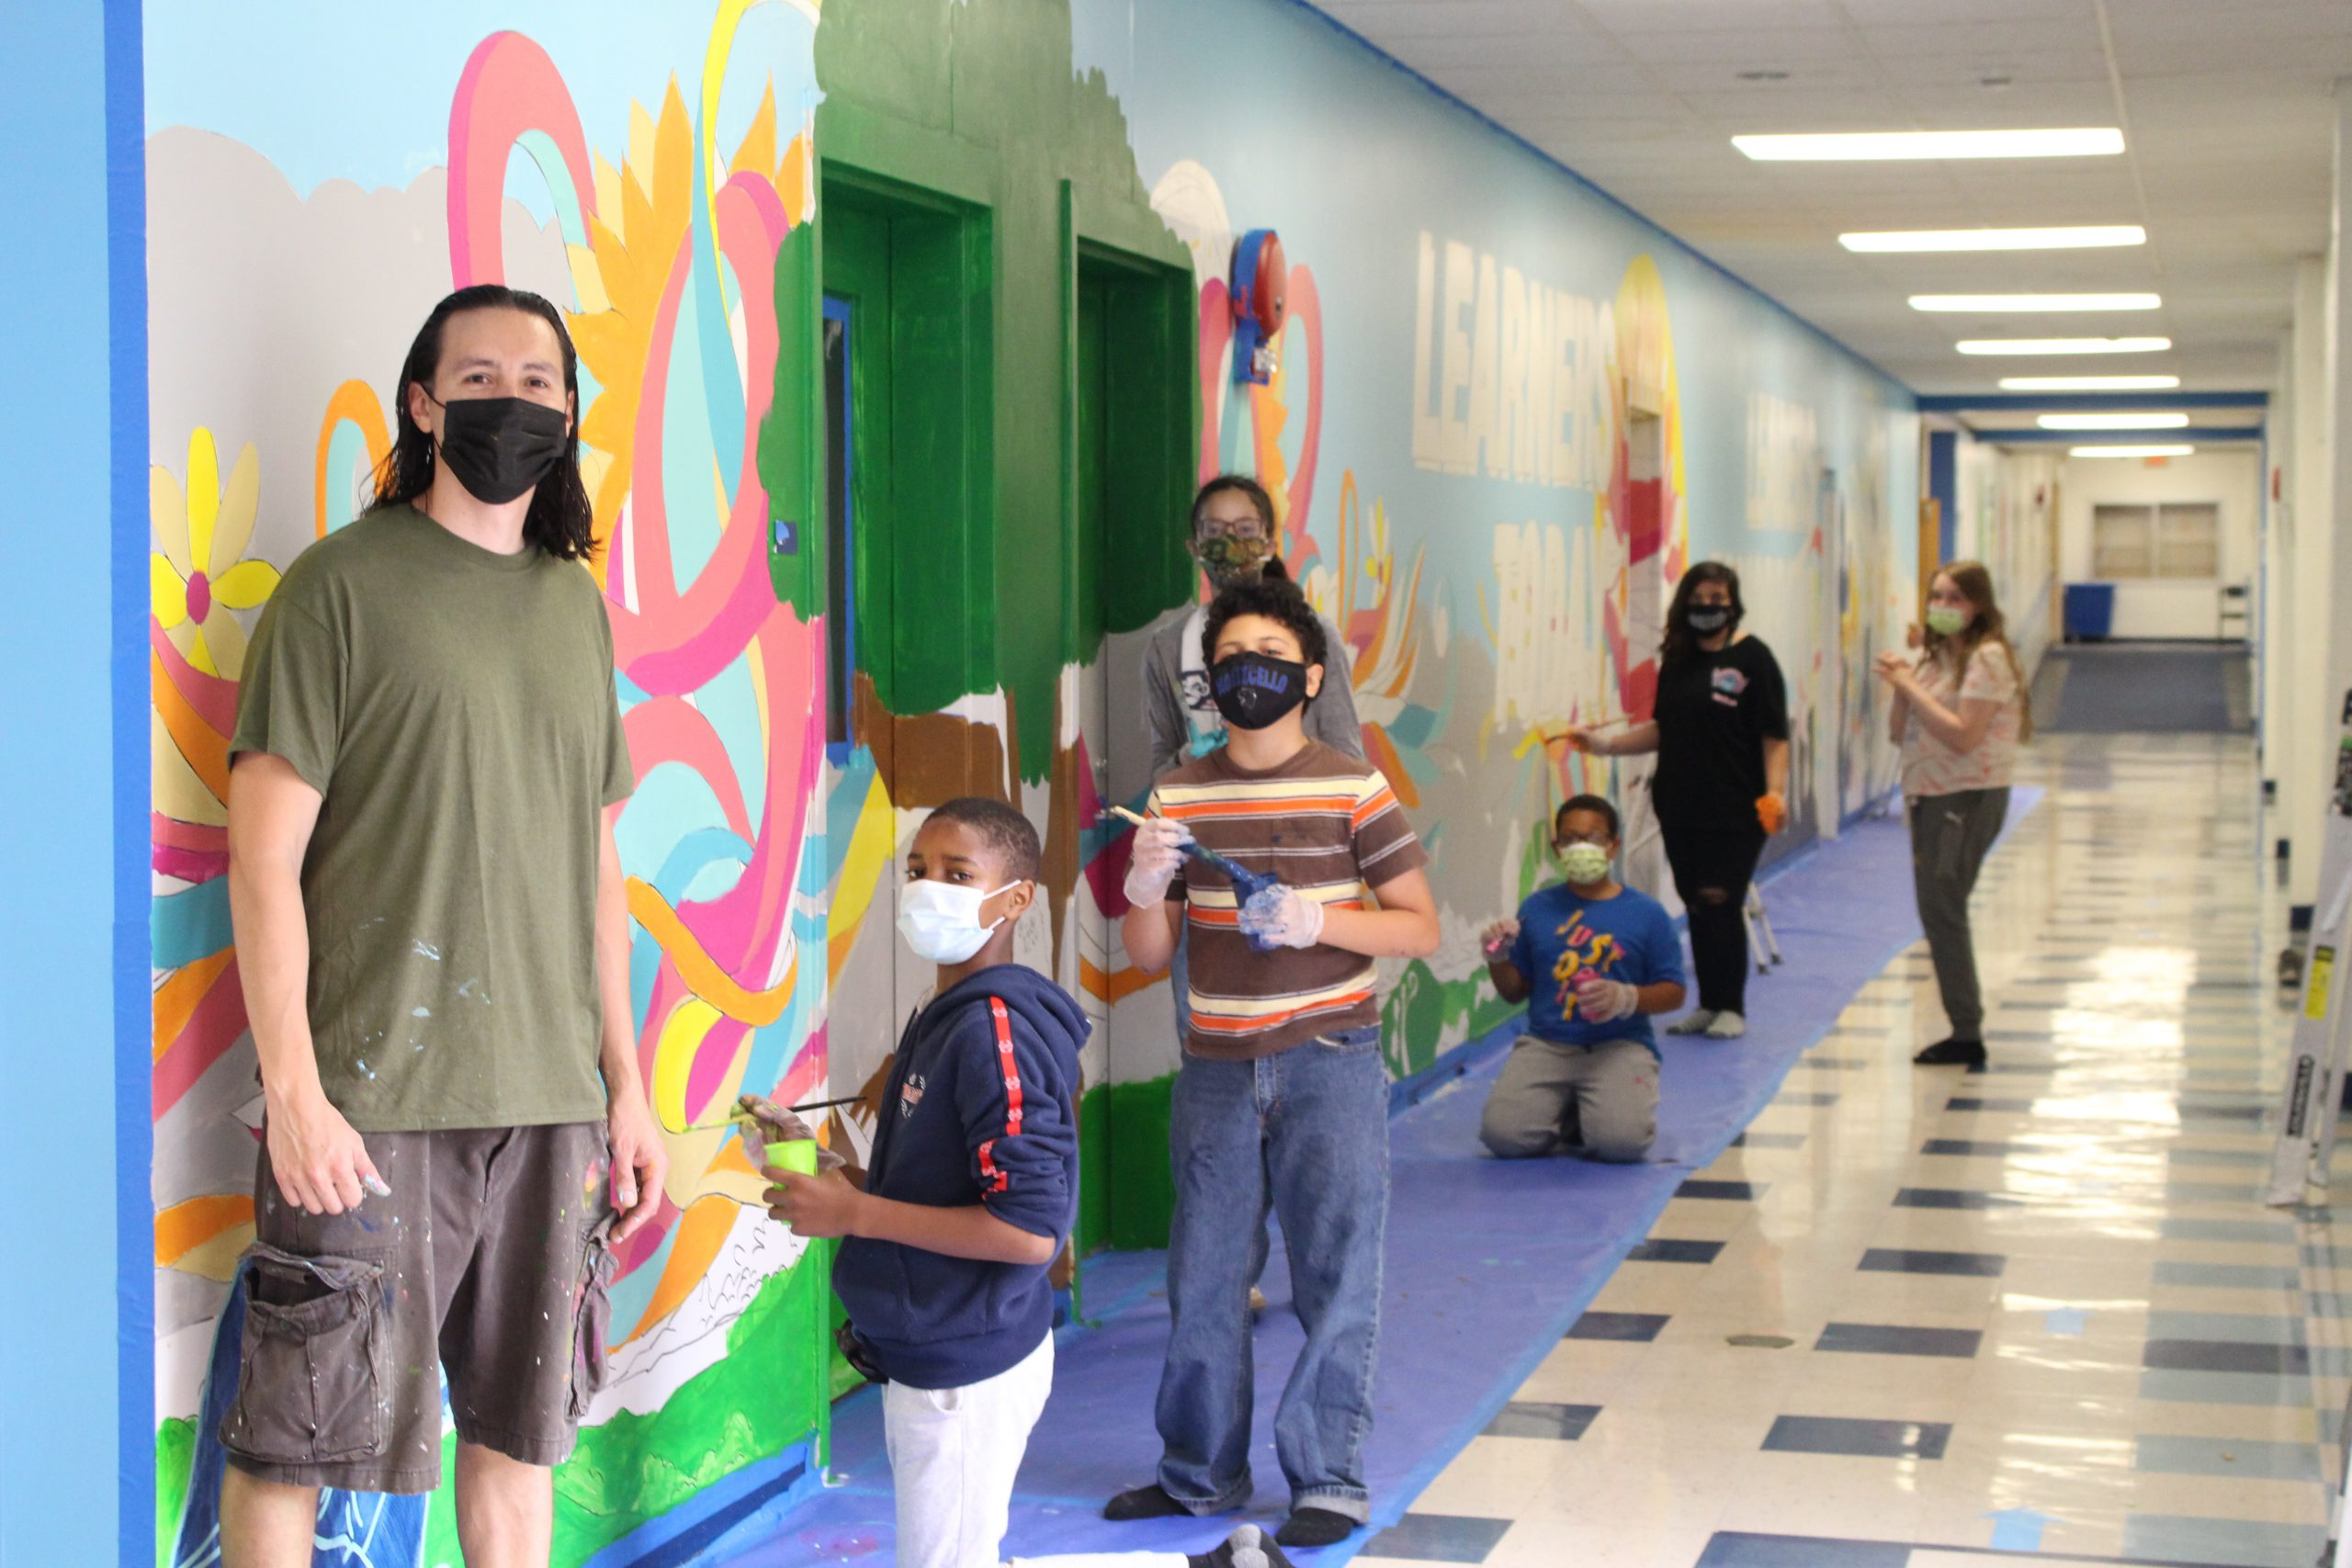 joe pimentel and student artists are standing next to the mural they created